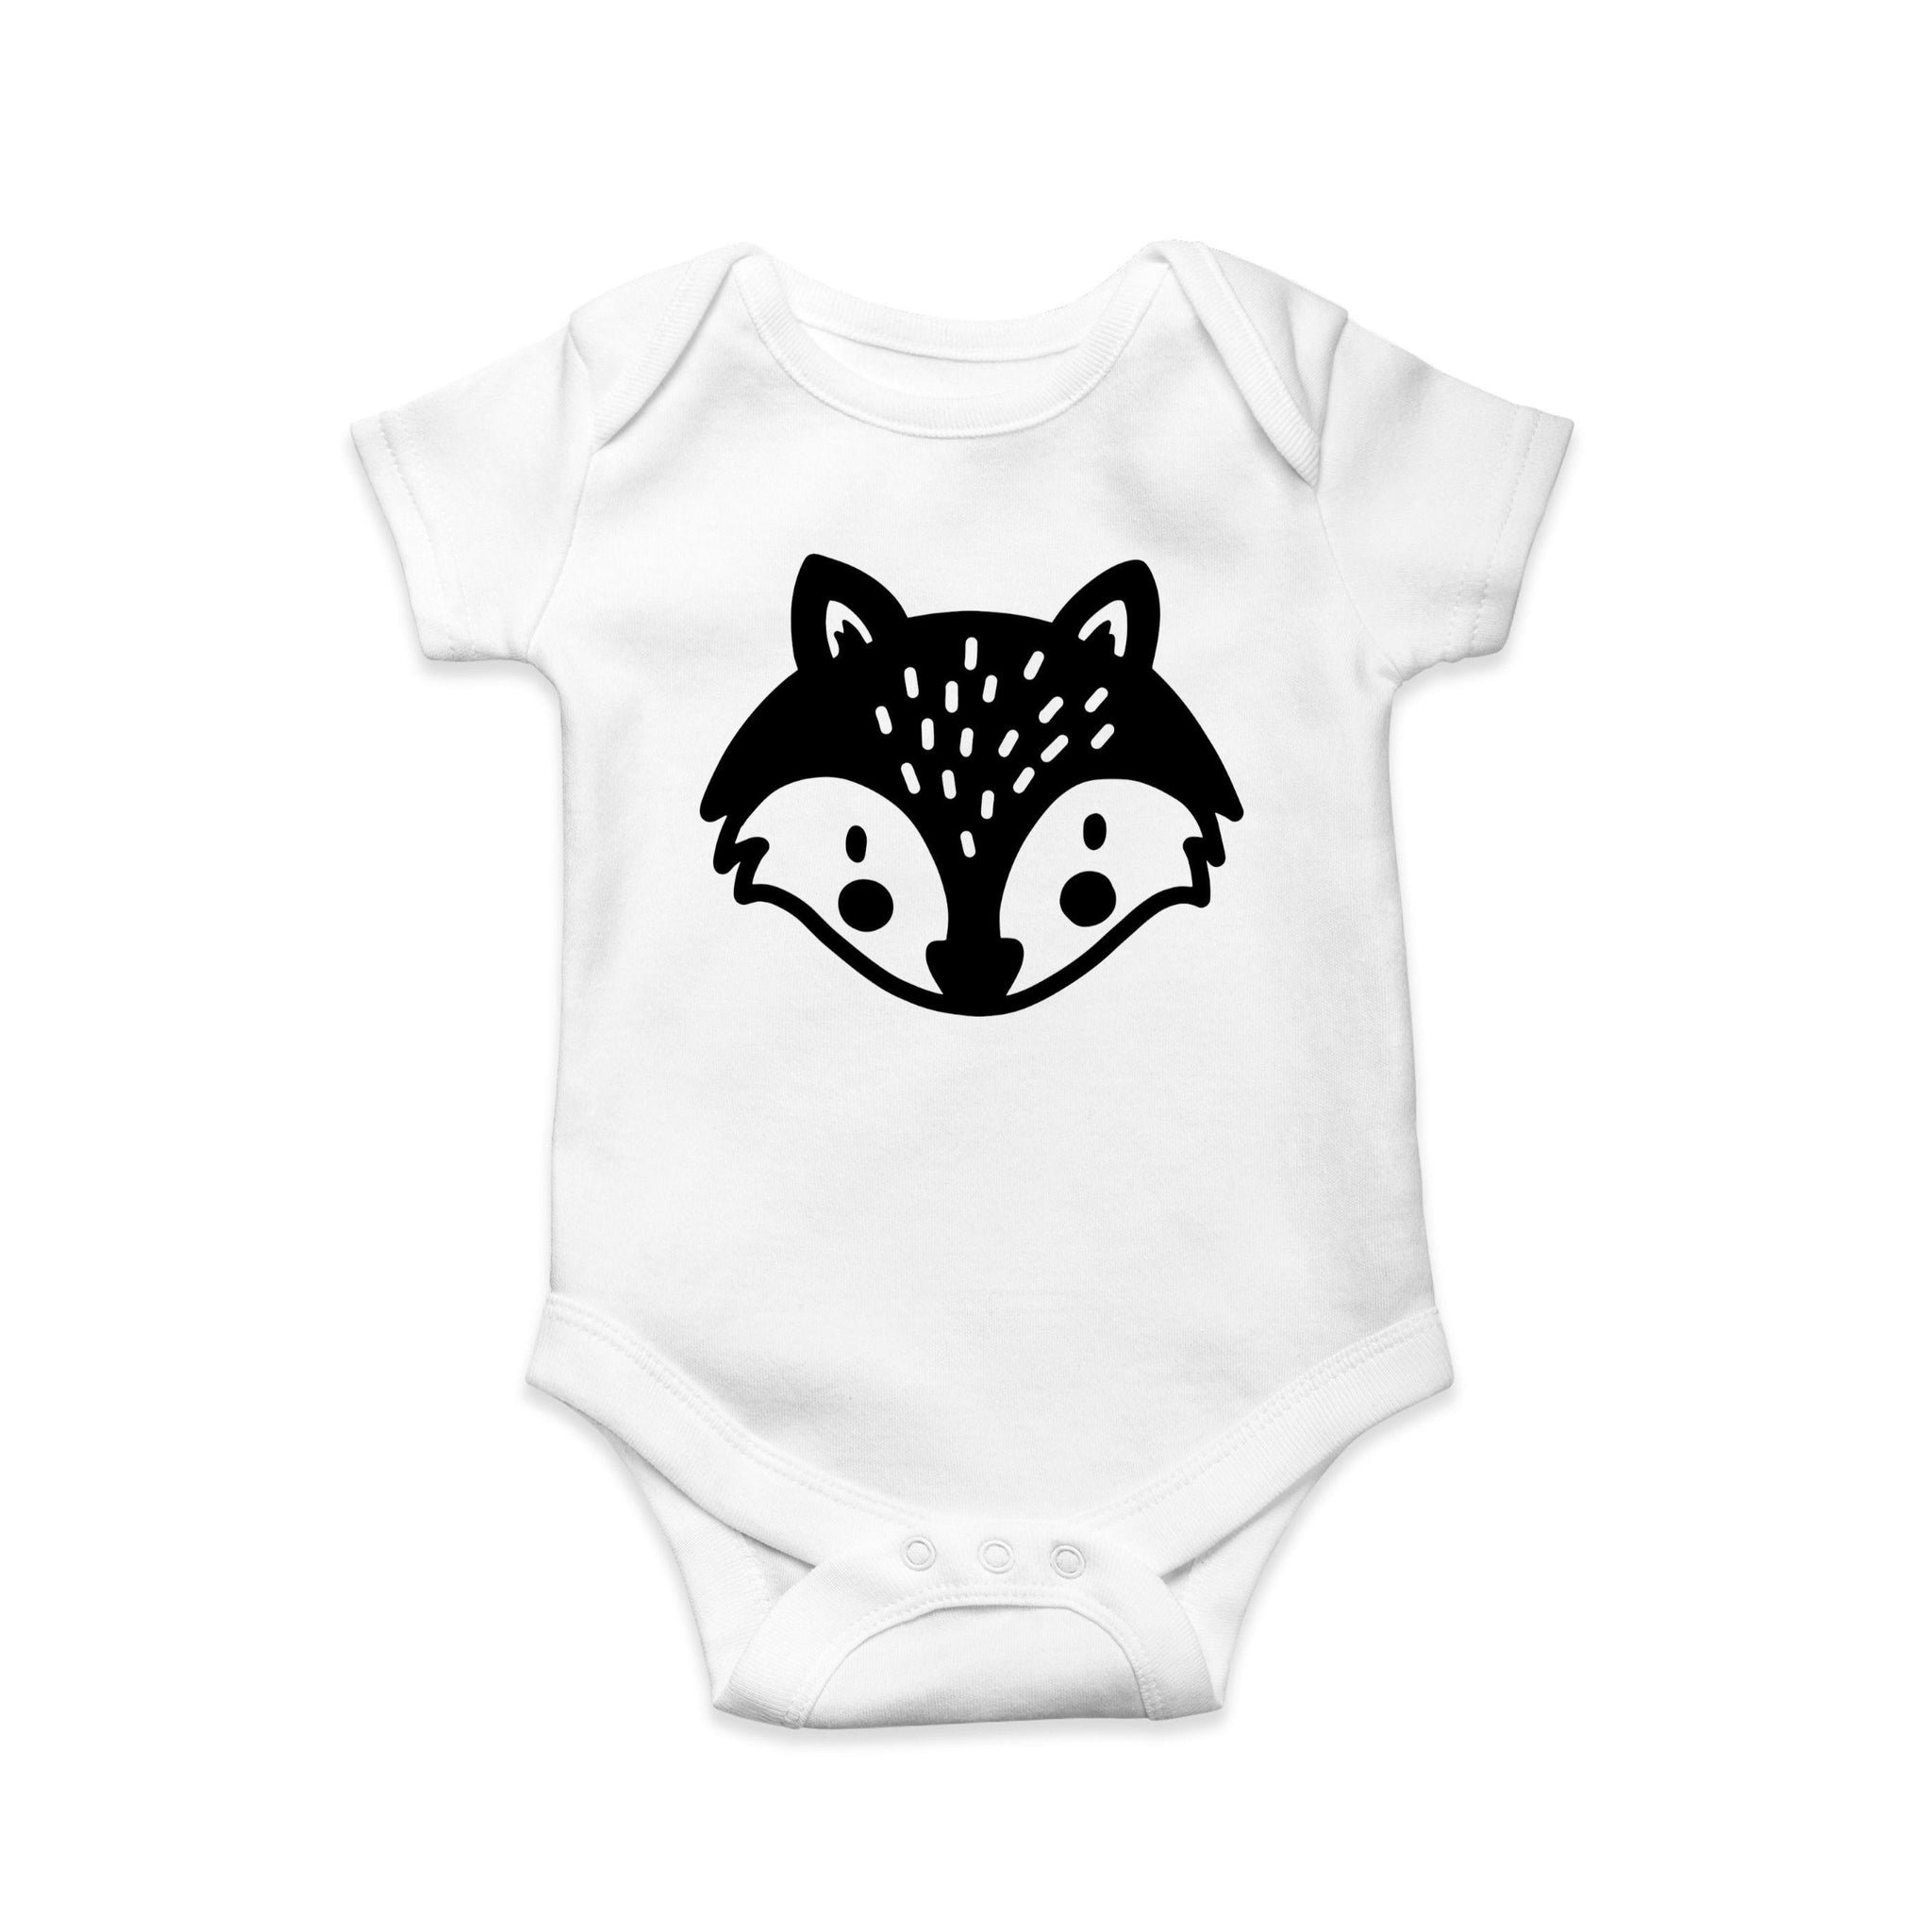 Fox baby body suit - Sew Tilley